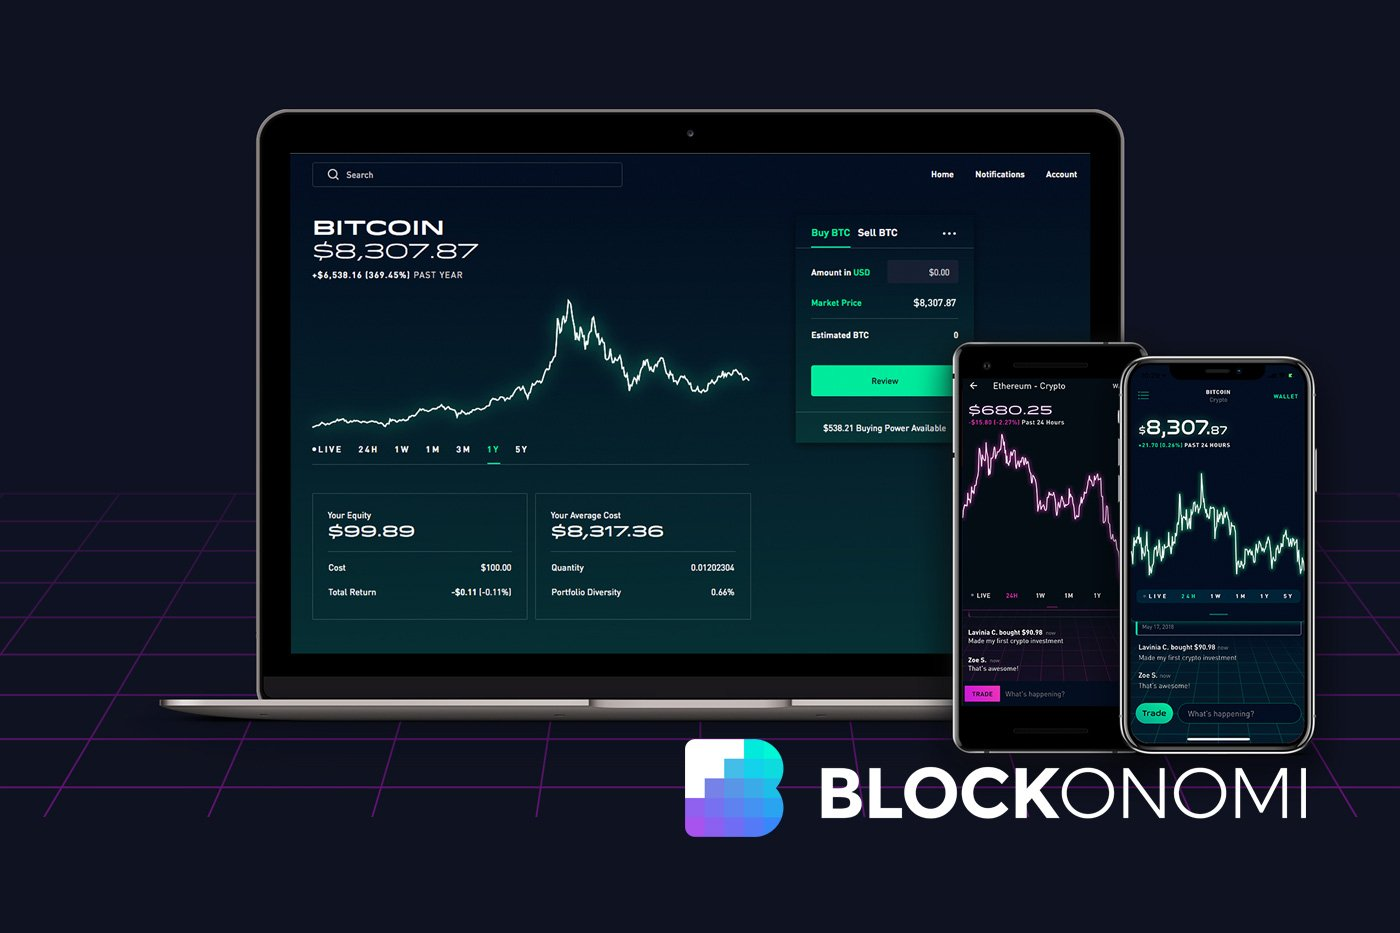 Crypto Trading App Robinhood Is Coming to the UK